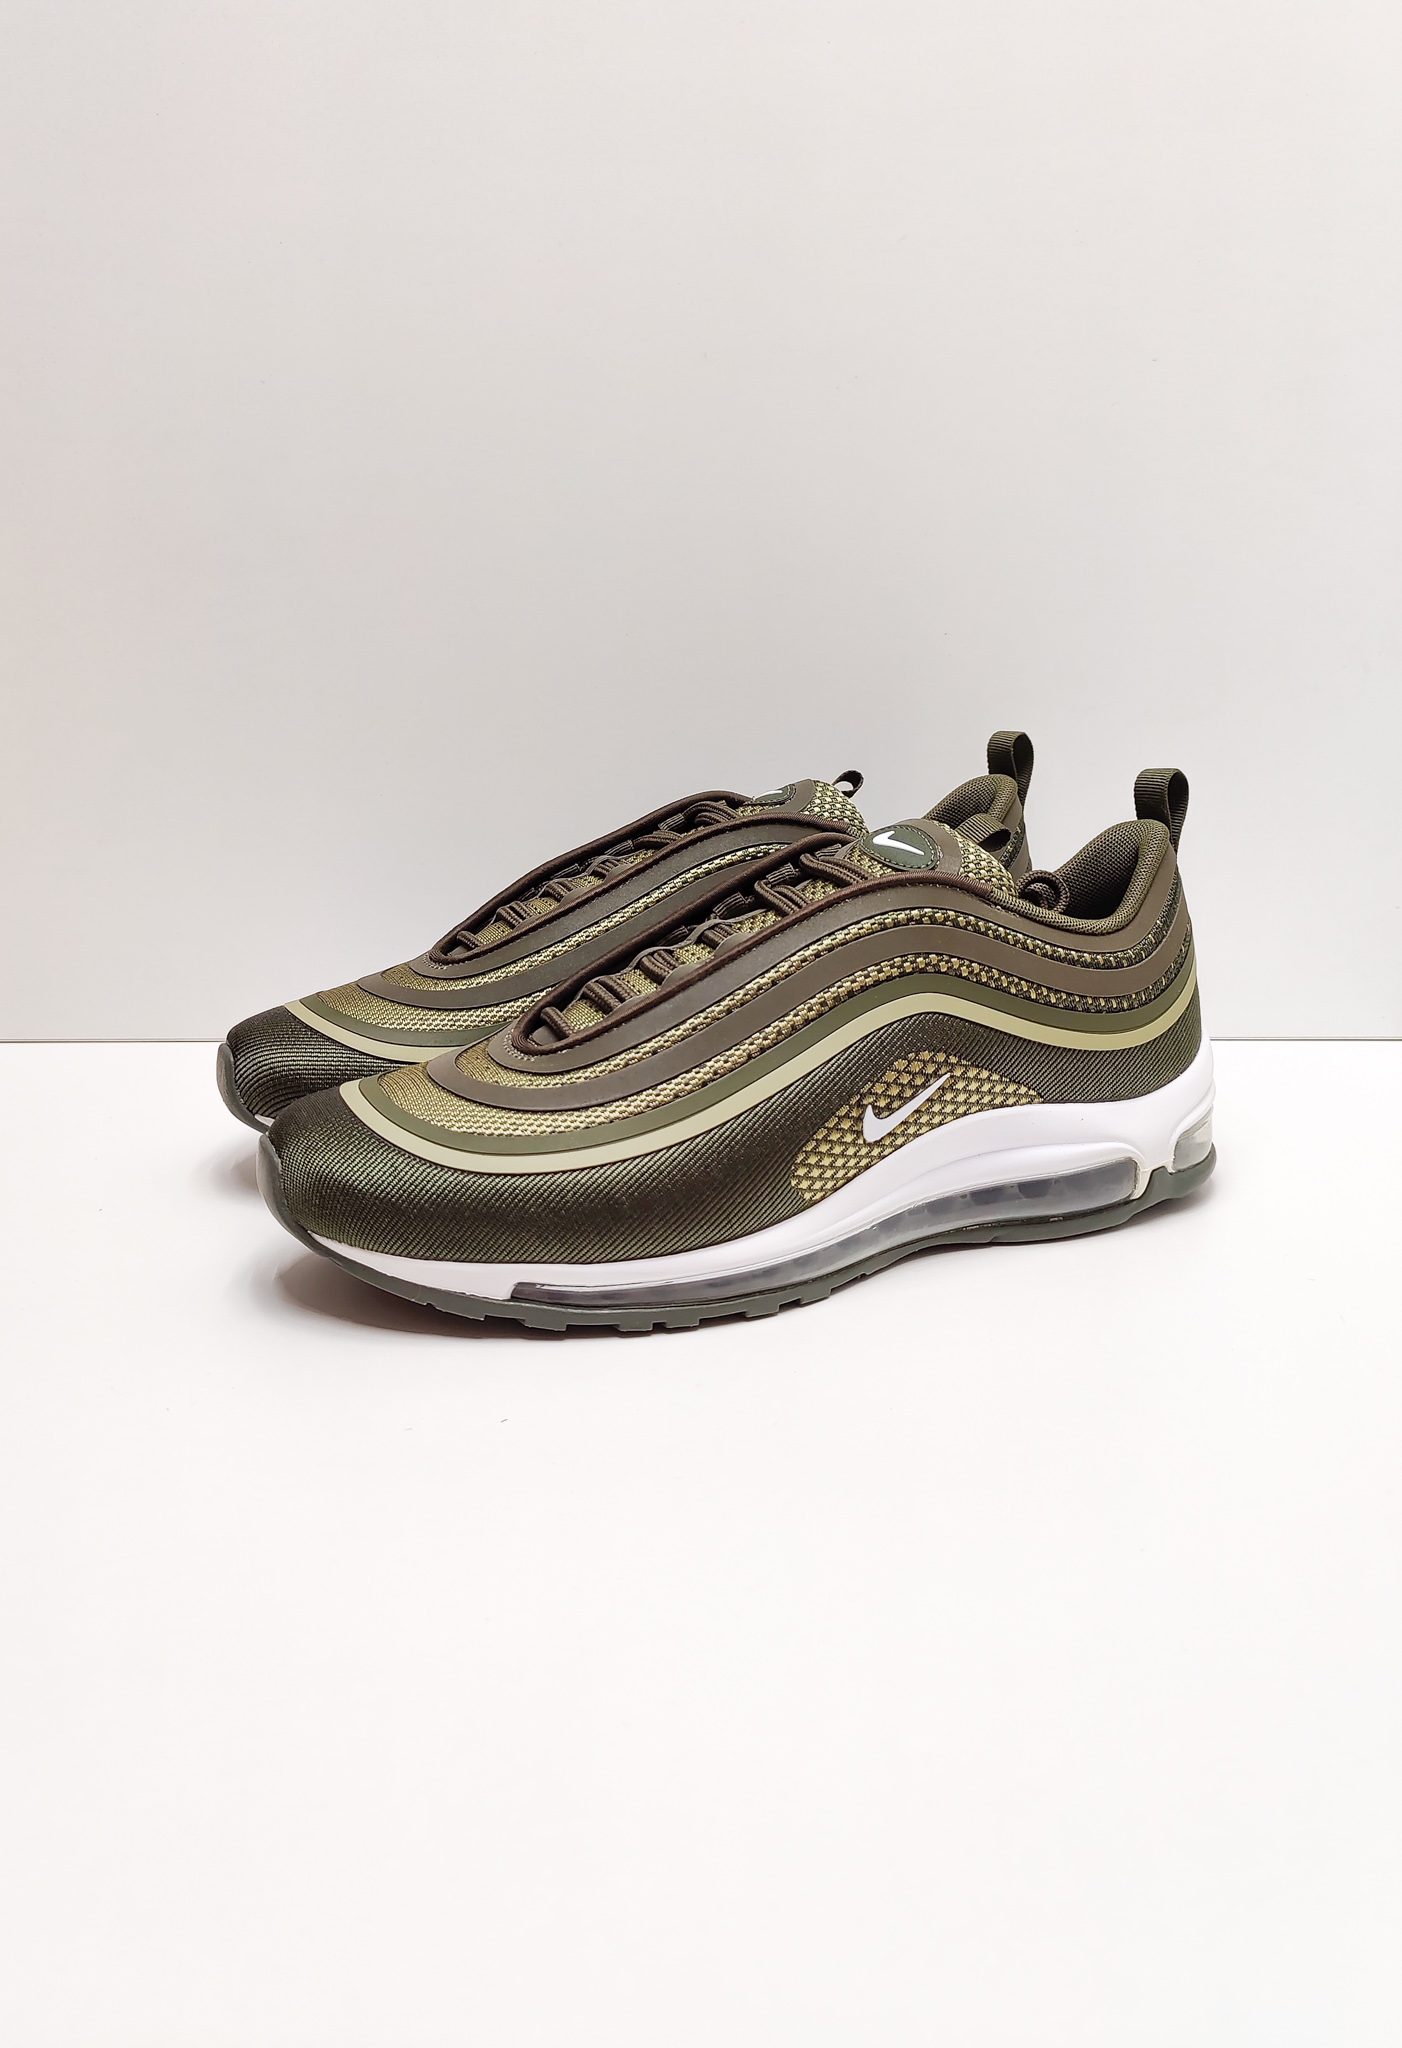 Nike Air Max 97 Ultra 17 Cargo Khaki